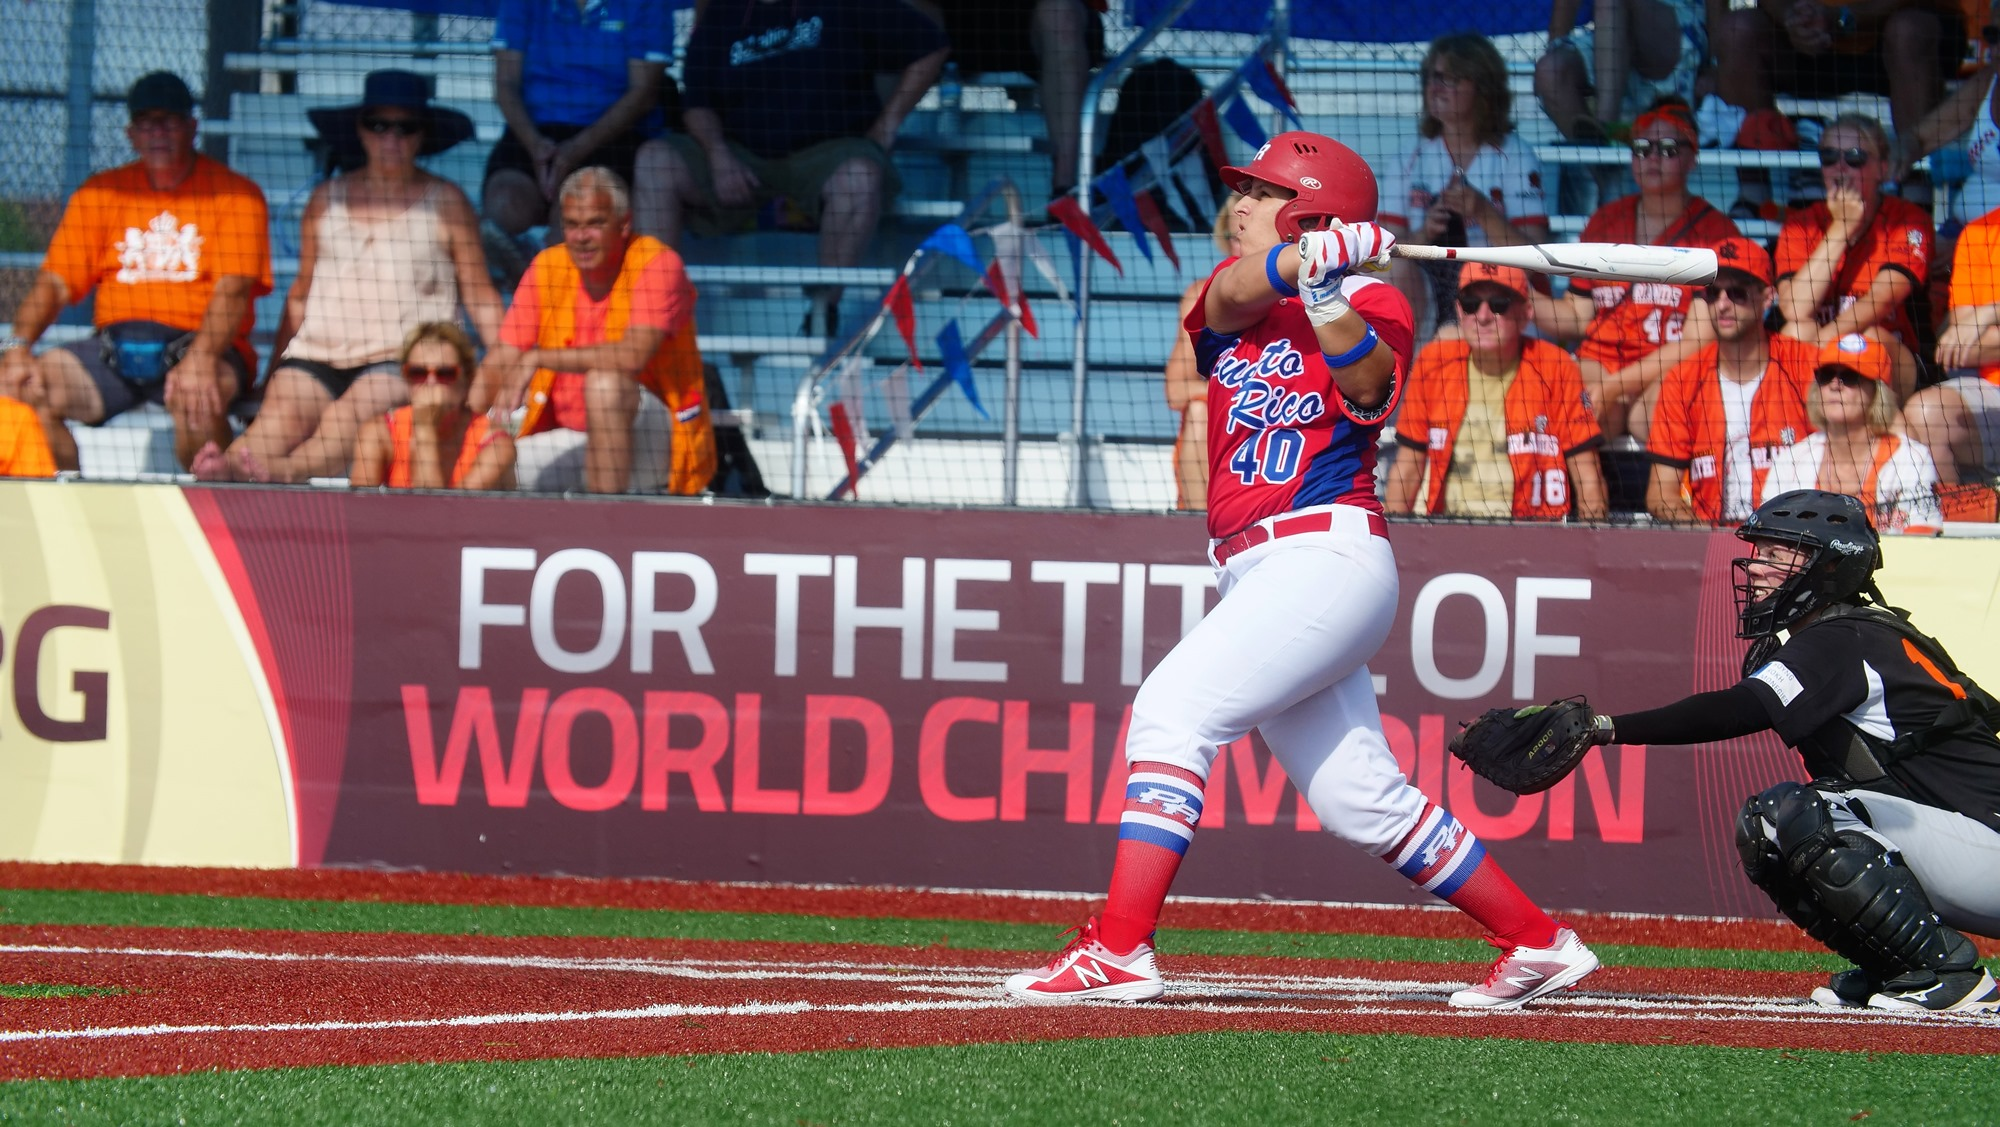 Diamilette Quiles led Puerto Rico offense against The Netherlands